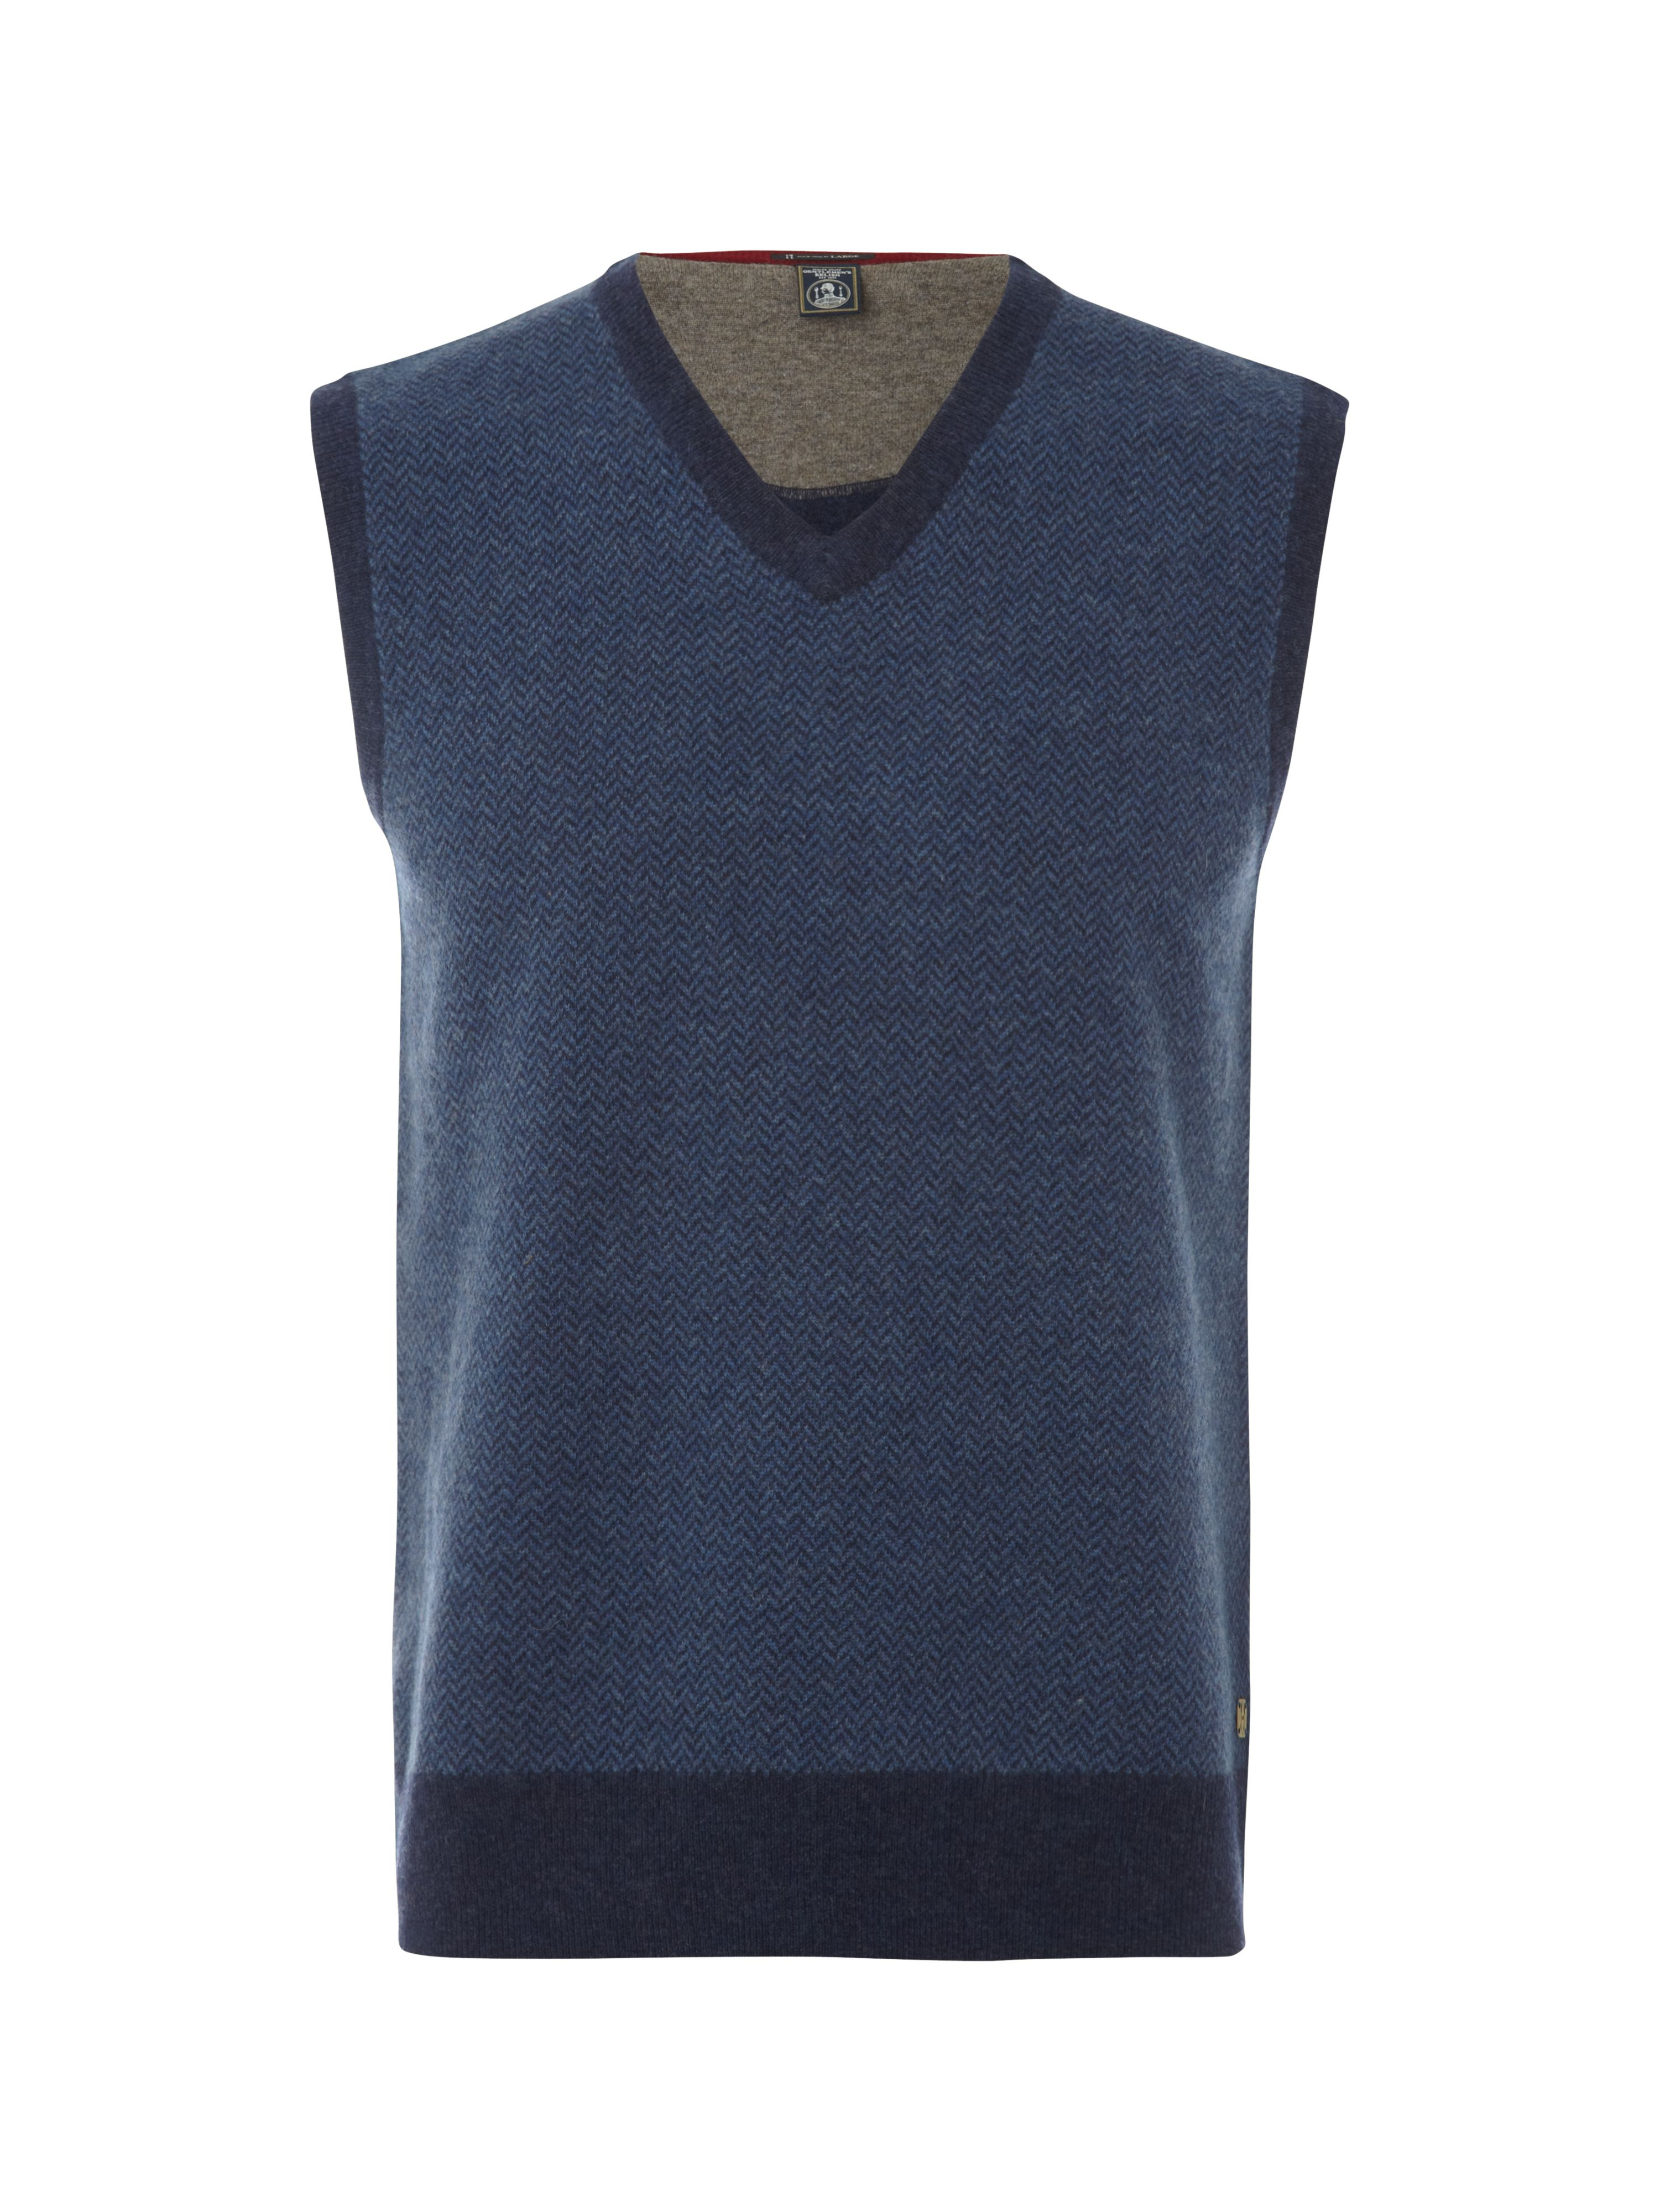 Jerry tank knit